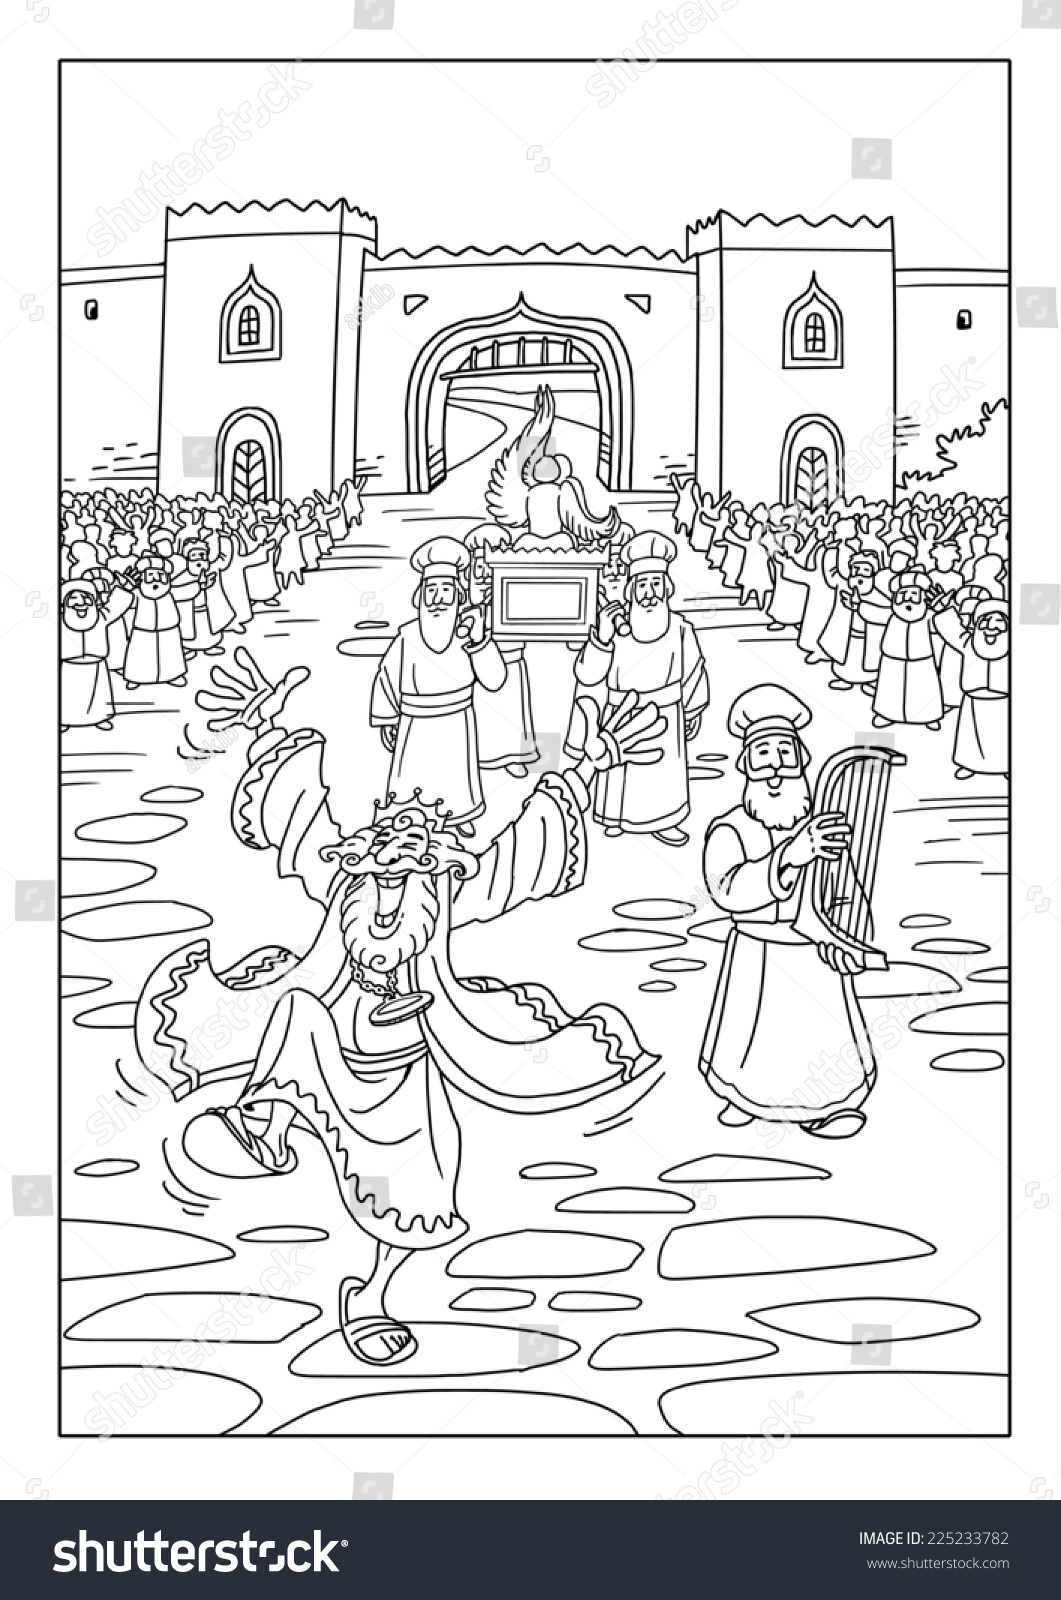 Coloring picture of the ark of covenant - King David Dancing And Rejoicing Because Priests Are God S Ark Of The Covenant